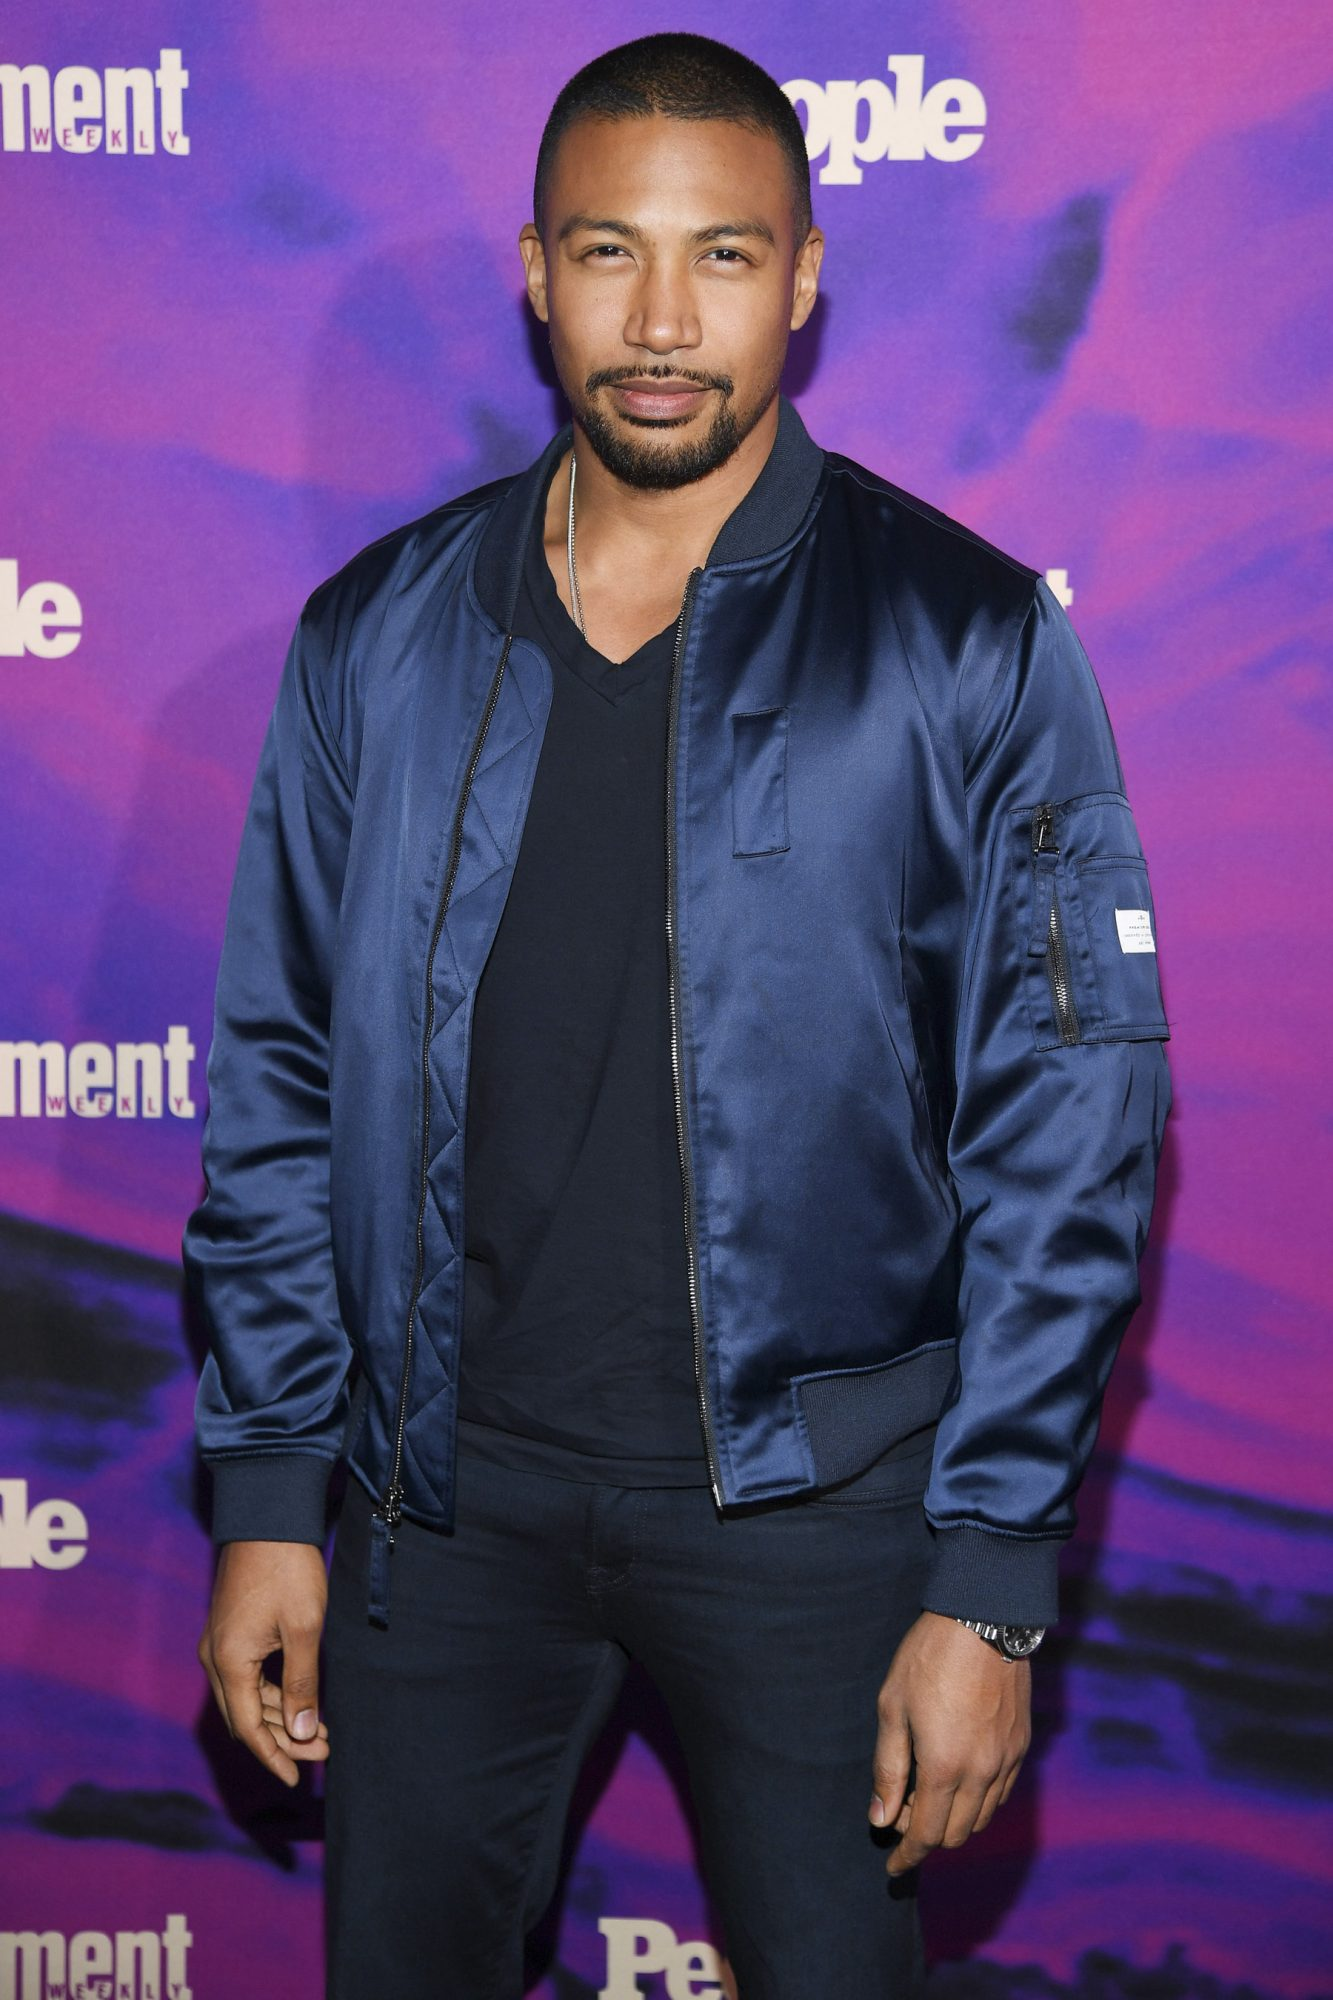 NEW YORK, NEW YORK - MAY 13: Charles Michael Davis of Younger attends the Entertainment Weekly & PEOPLE New York Upfronts Party on May 13, 2019 in New York City. (Photo by Dimitrios Kambouris/Getty Images for Entertainment Weekly & PEOPLE)